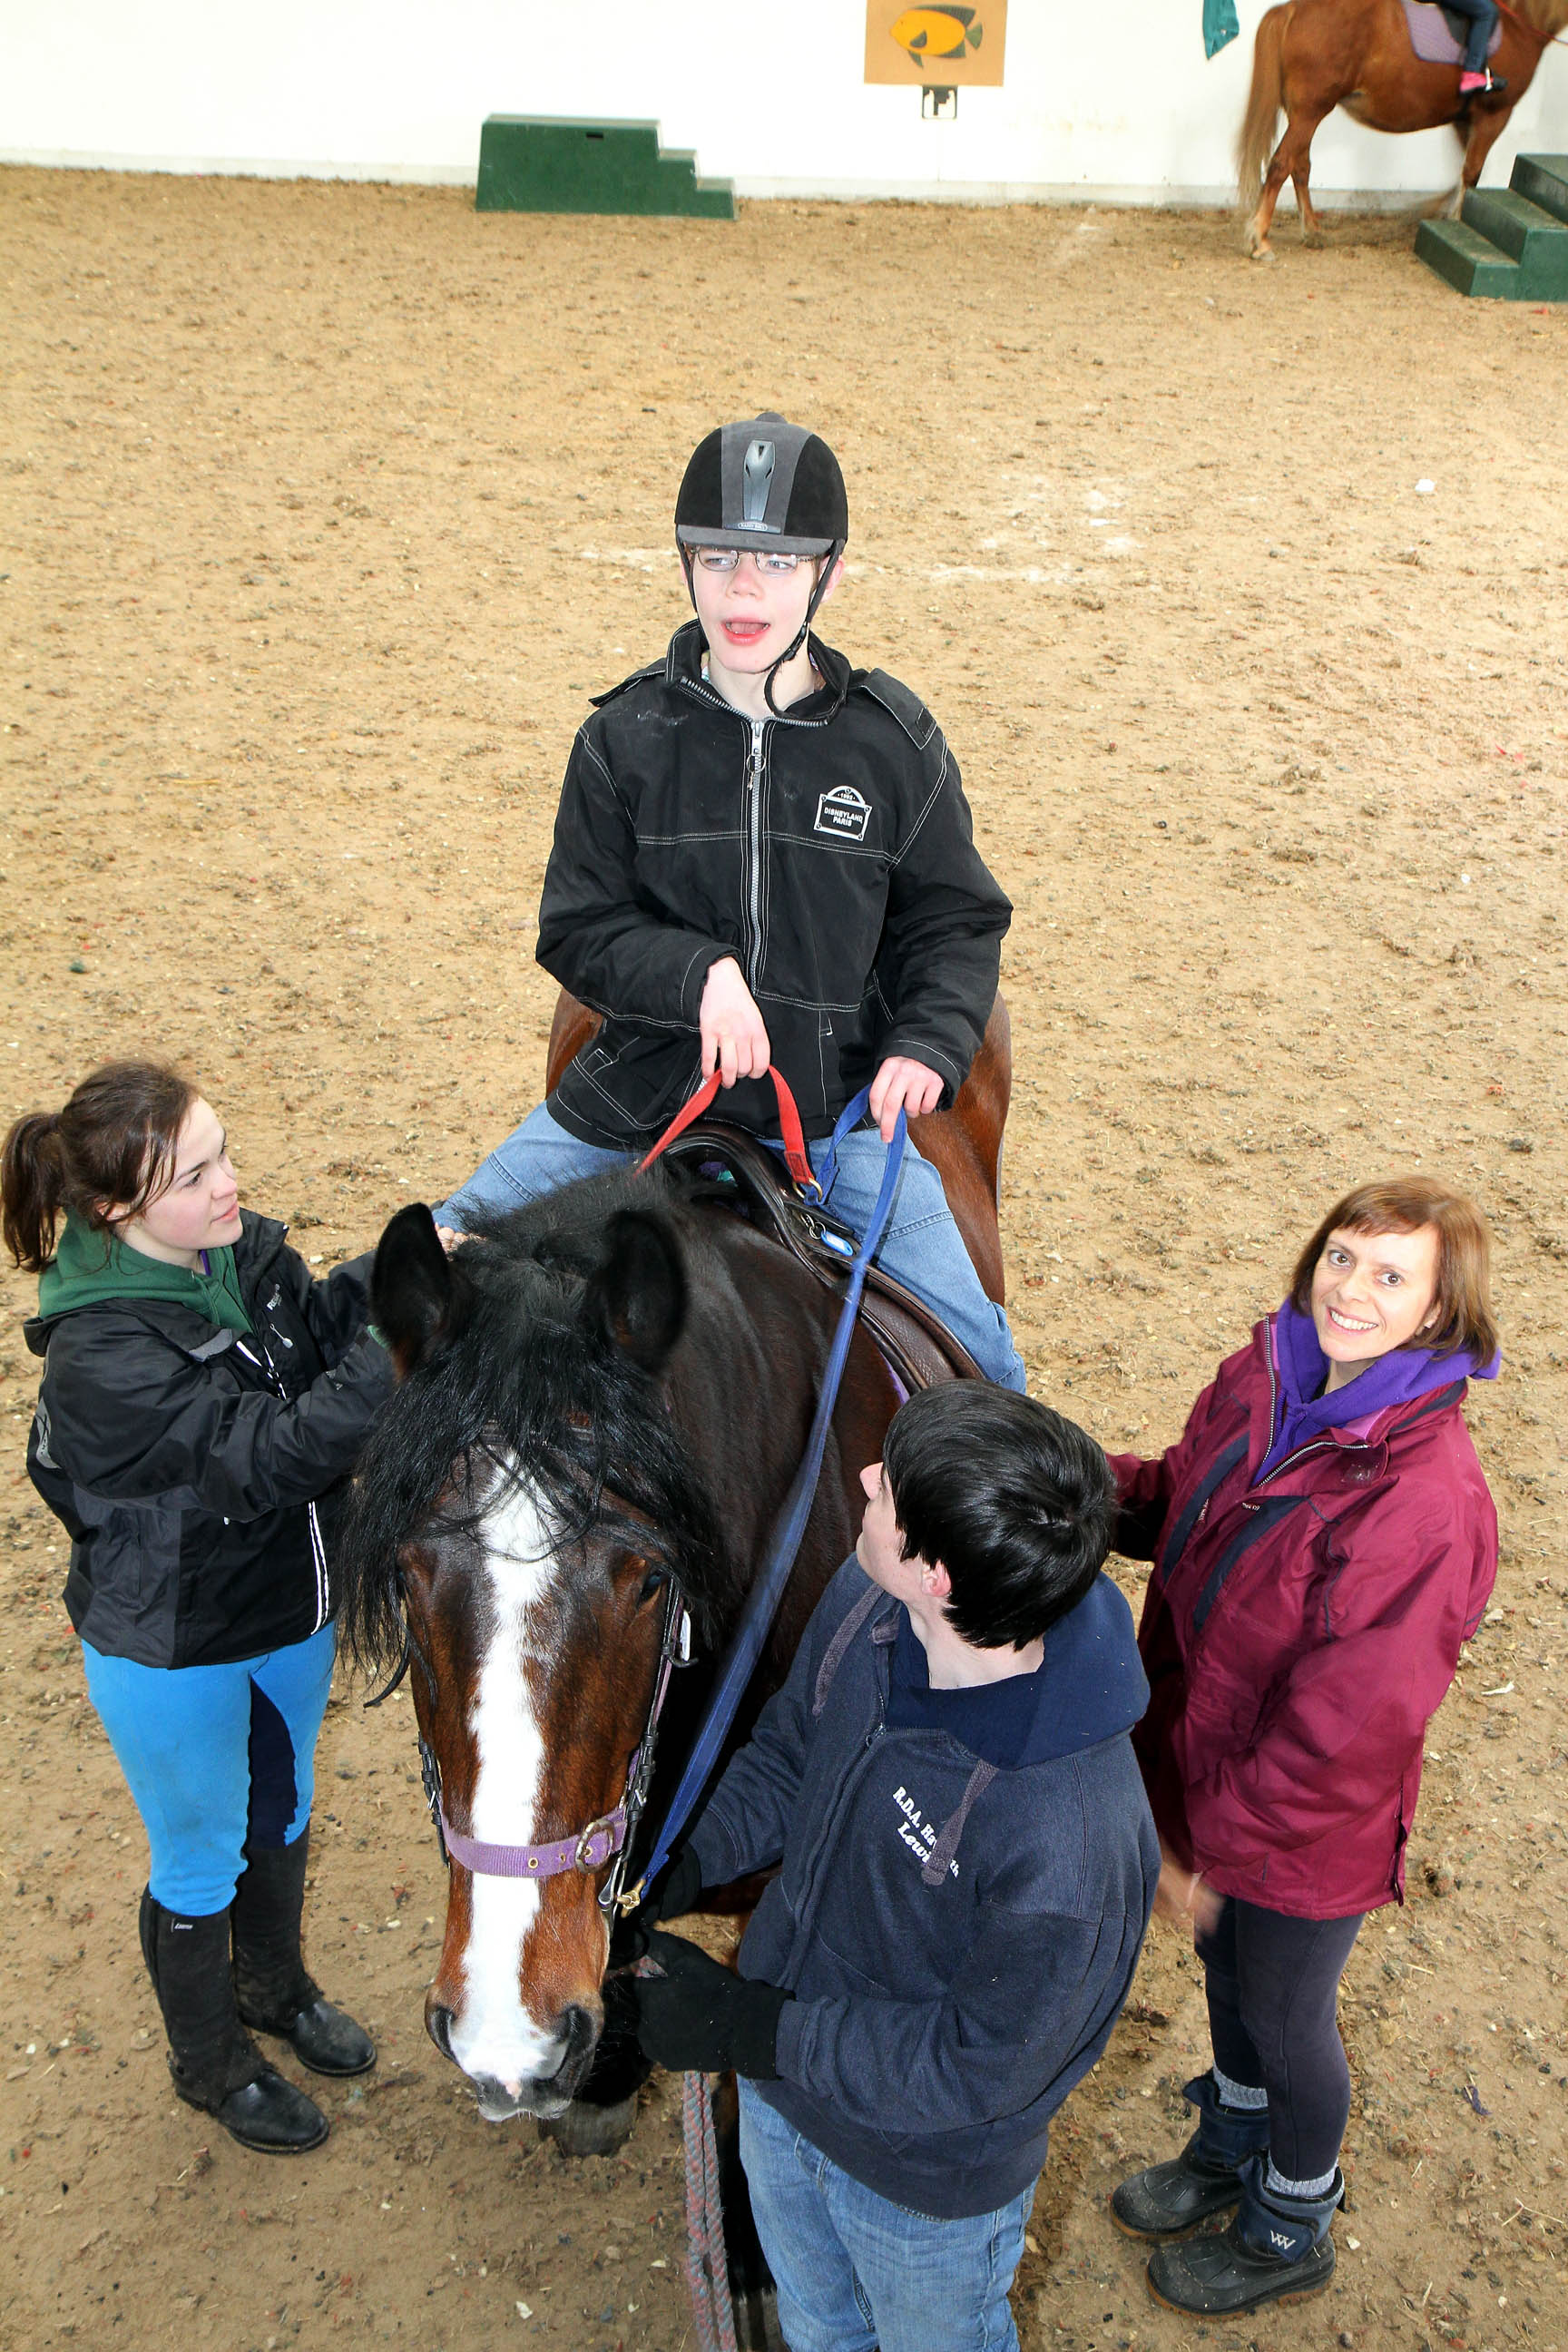 Noah Hinett on Chief at Haworth RDA, with, from left, Zoe Bell, Lewis Feather and Michelle Cranswick